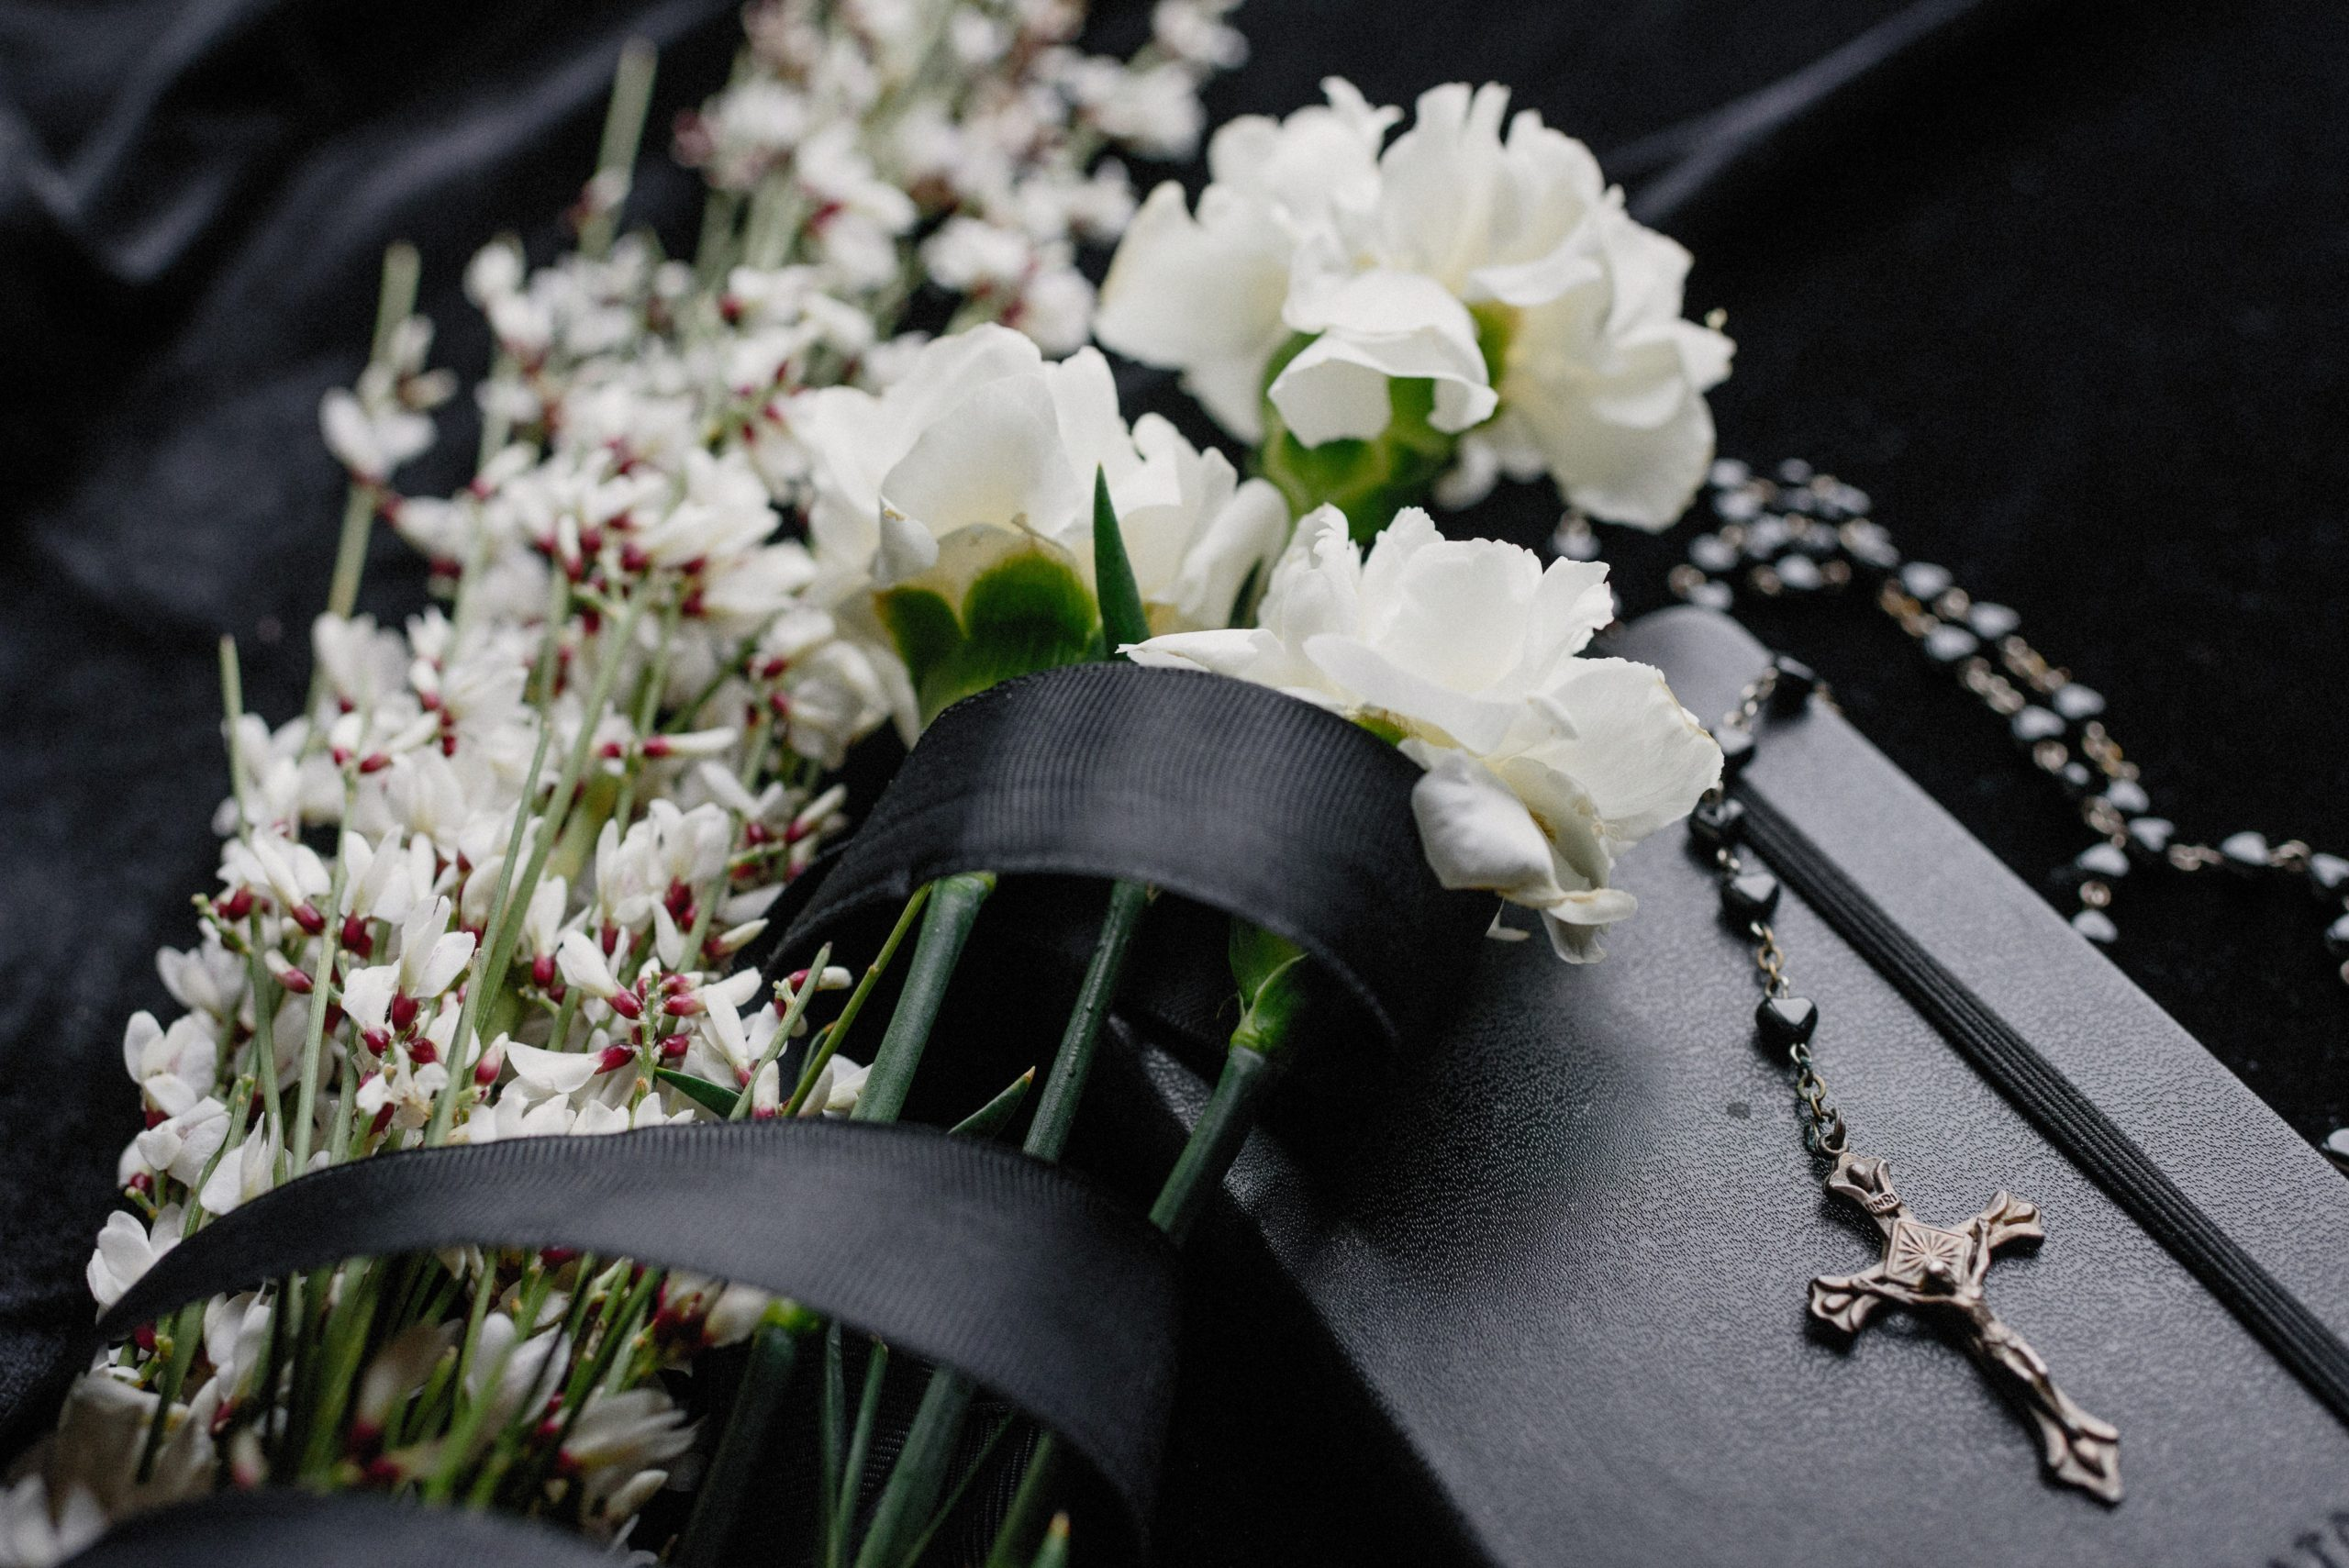 Funeral Home Insurance